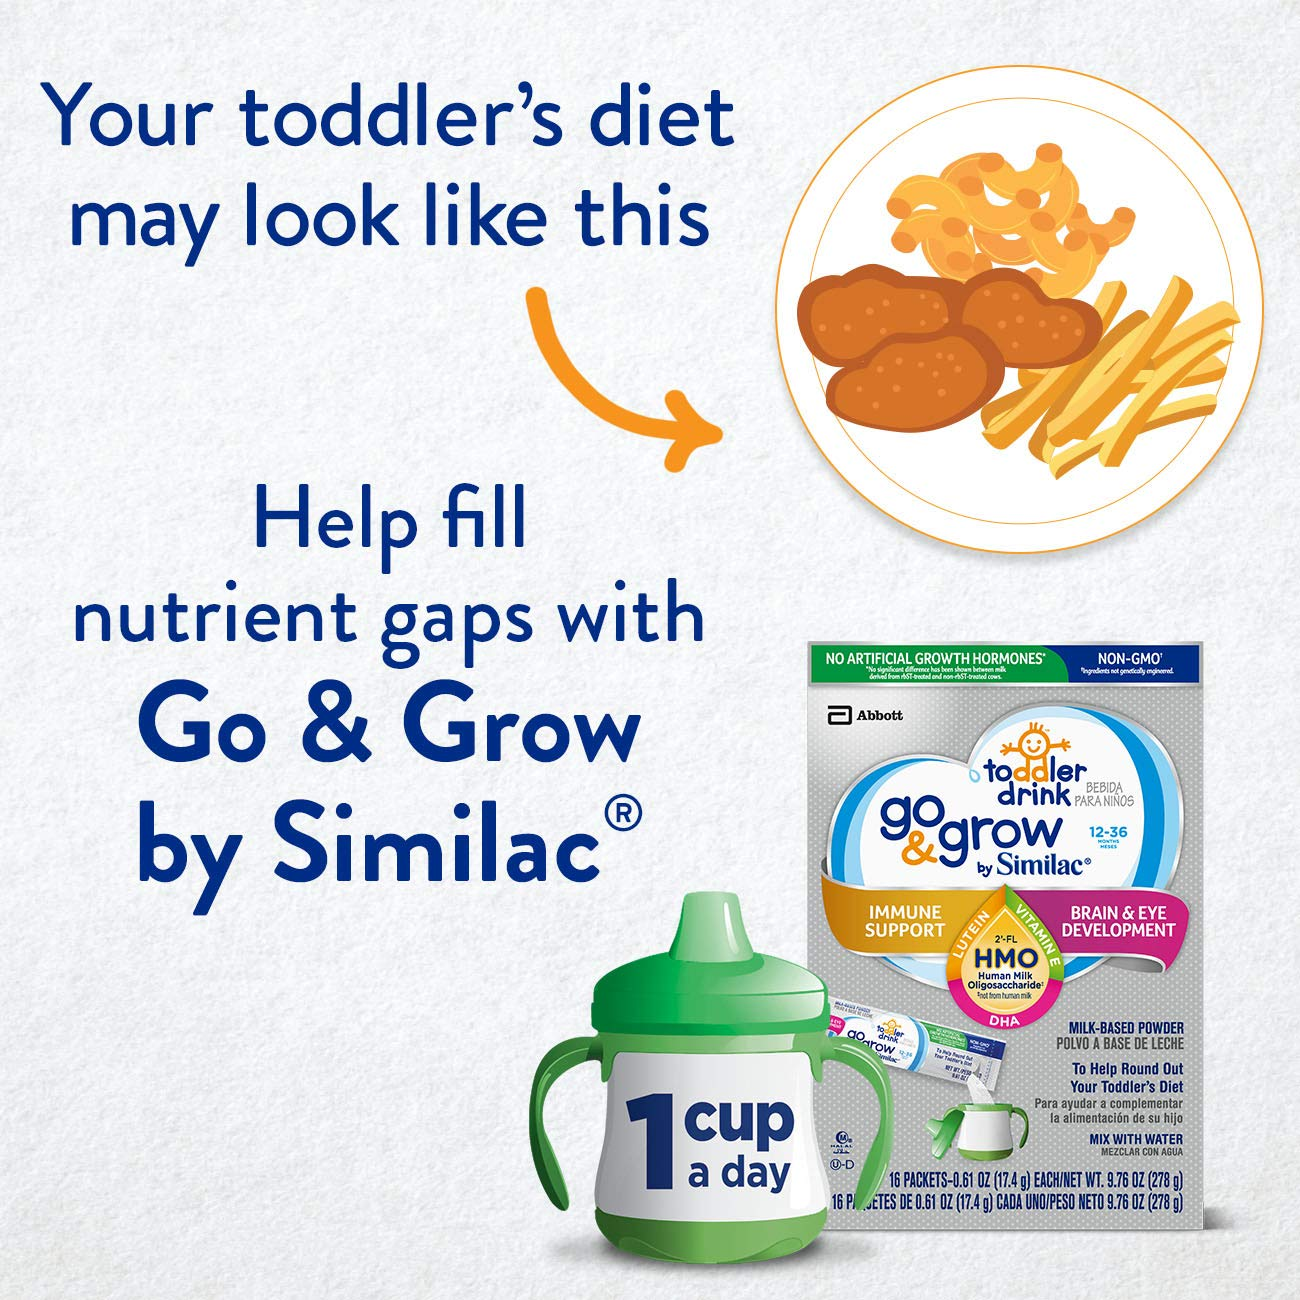 Go & Grow by Similac Non-GMO Toddler Milk-Based Drink with 2'-FL HMO for Immune Support, Powder Stick Packs, 17.4 g, 64 Count by Similac Go & Grow Milk (Image #10)